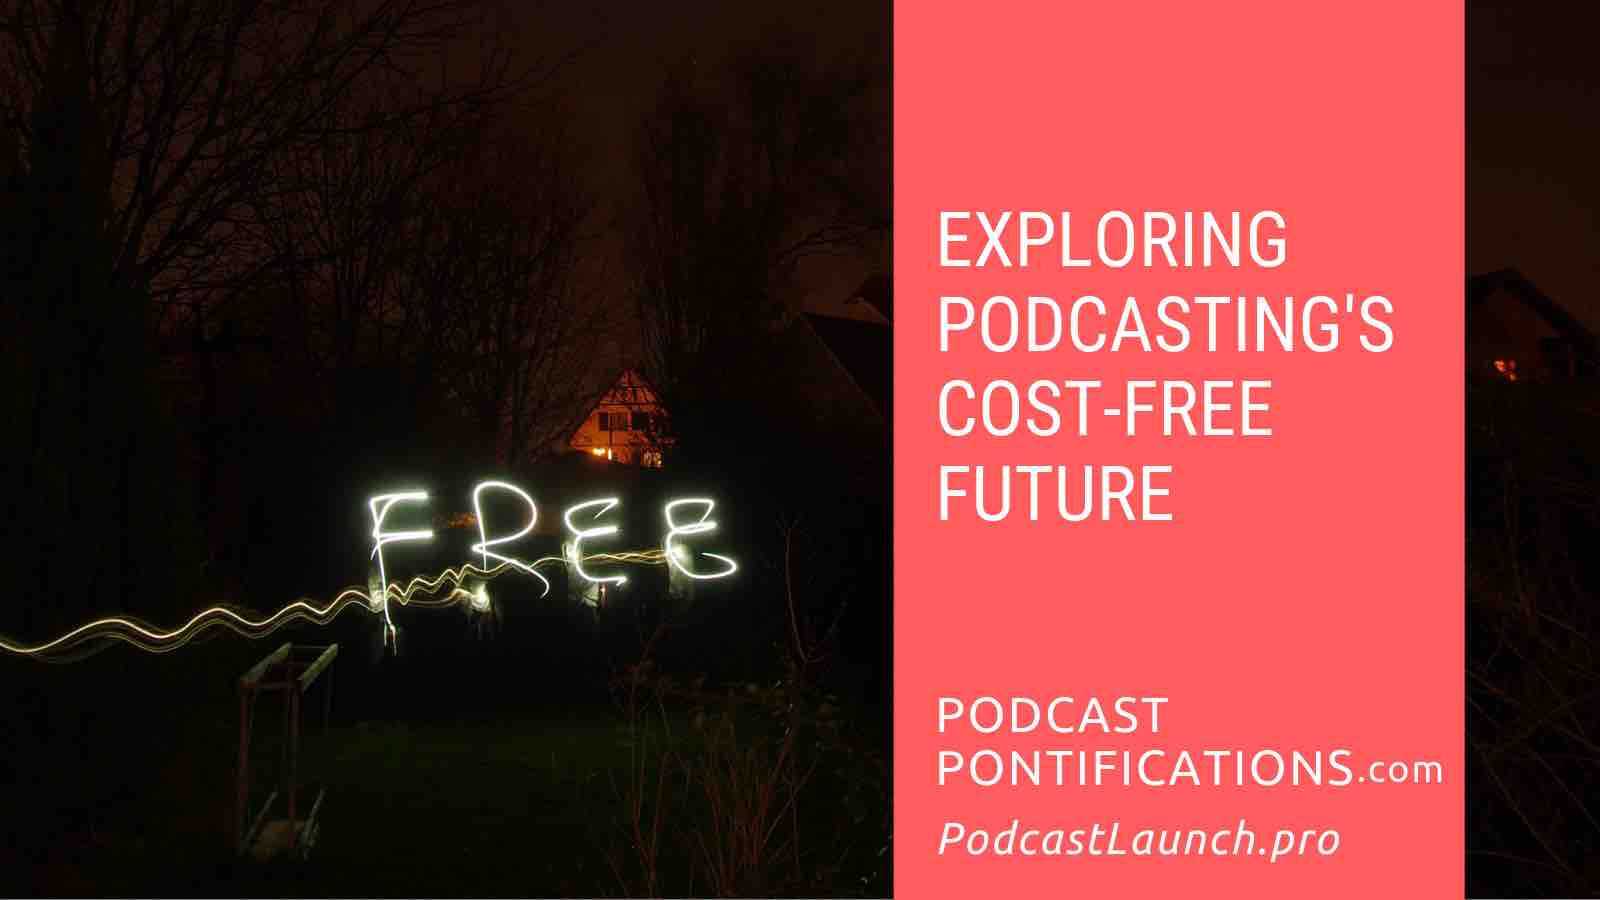 Exploring Podcasting's Cost-Free Future